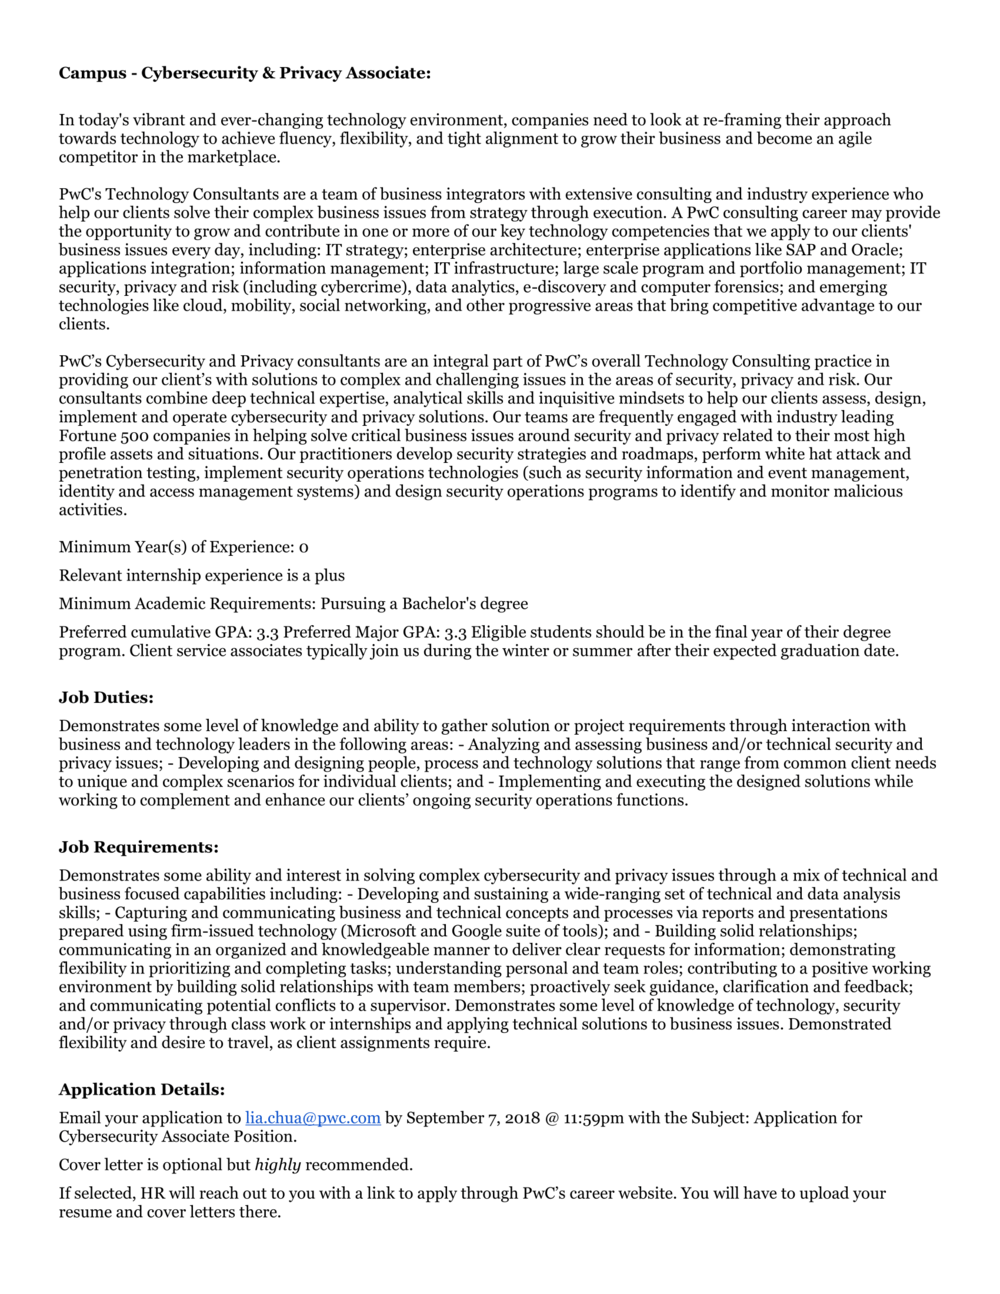 Cybersecurity & Privacy Job Posting-1.png